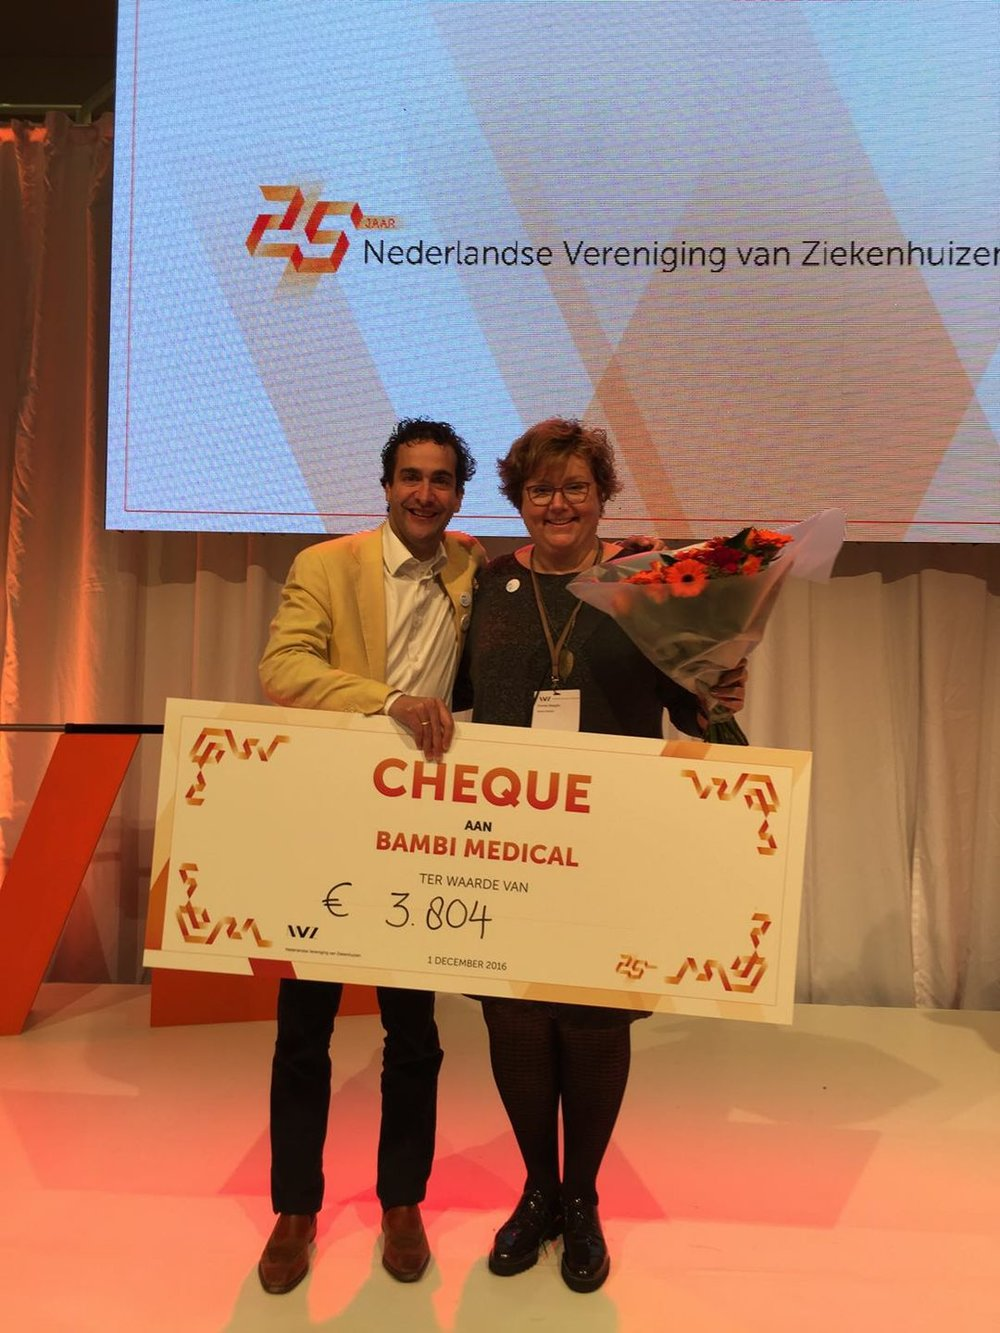 CEO and CMO of Bambi Medical after winning the price at the Dutch Hospital Association's conference